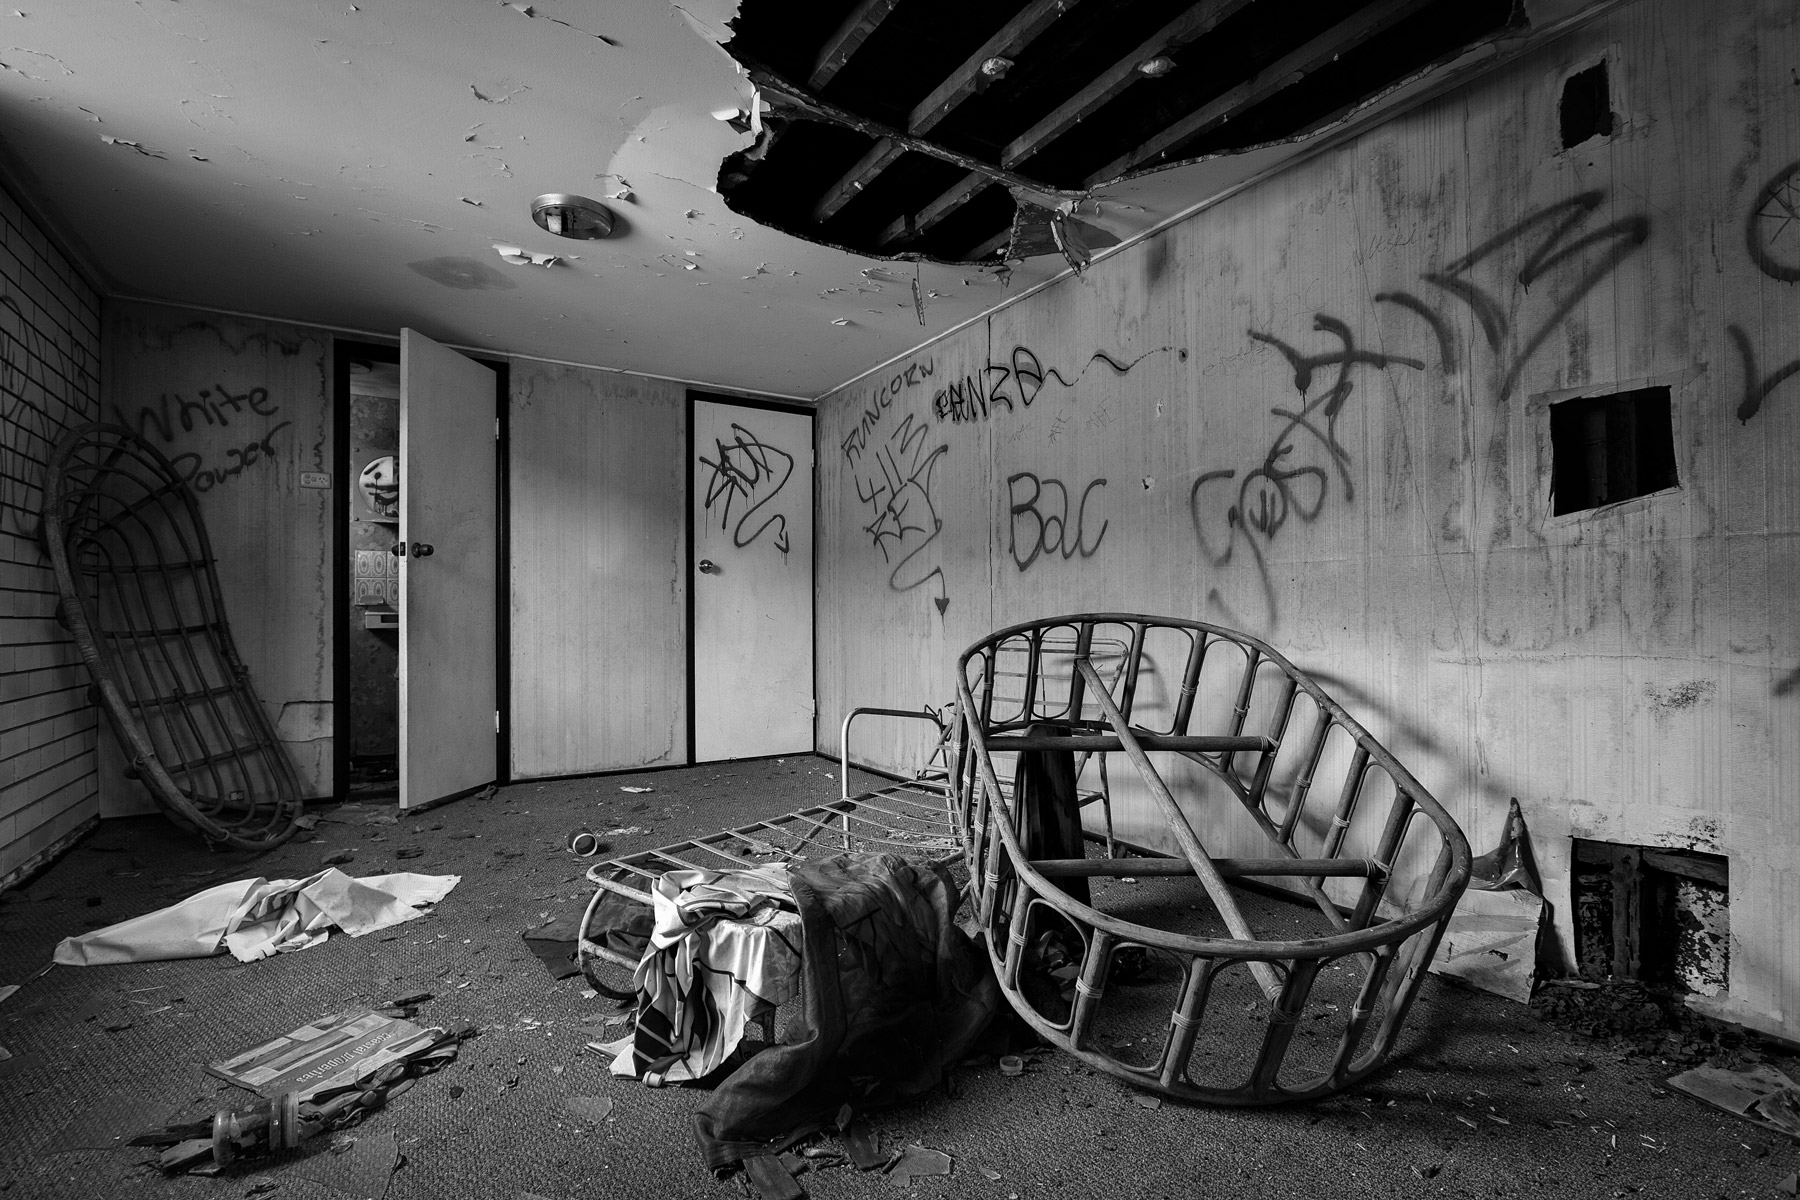 A room in an abandoned house destroyed by fire